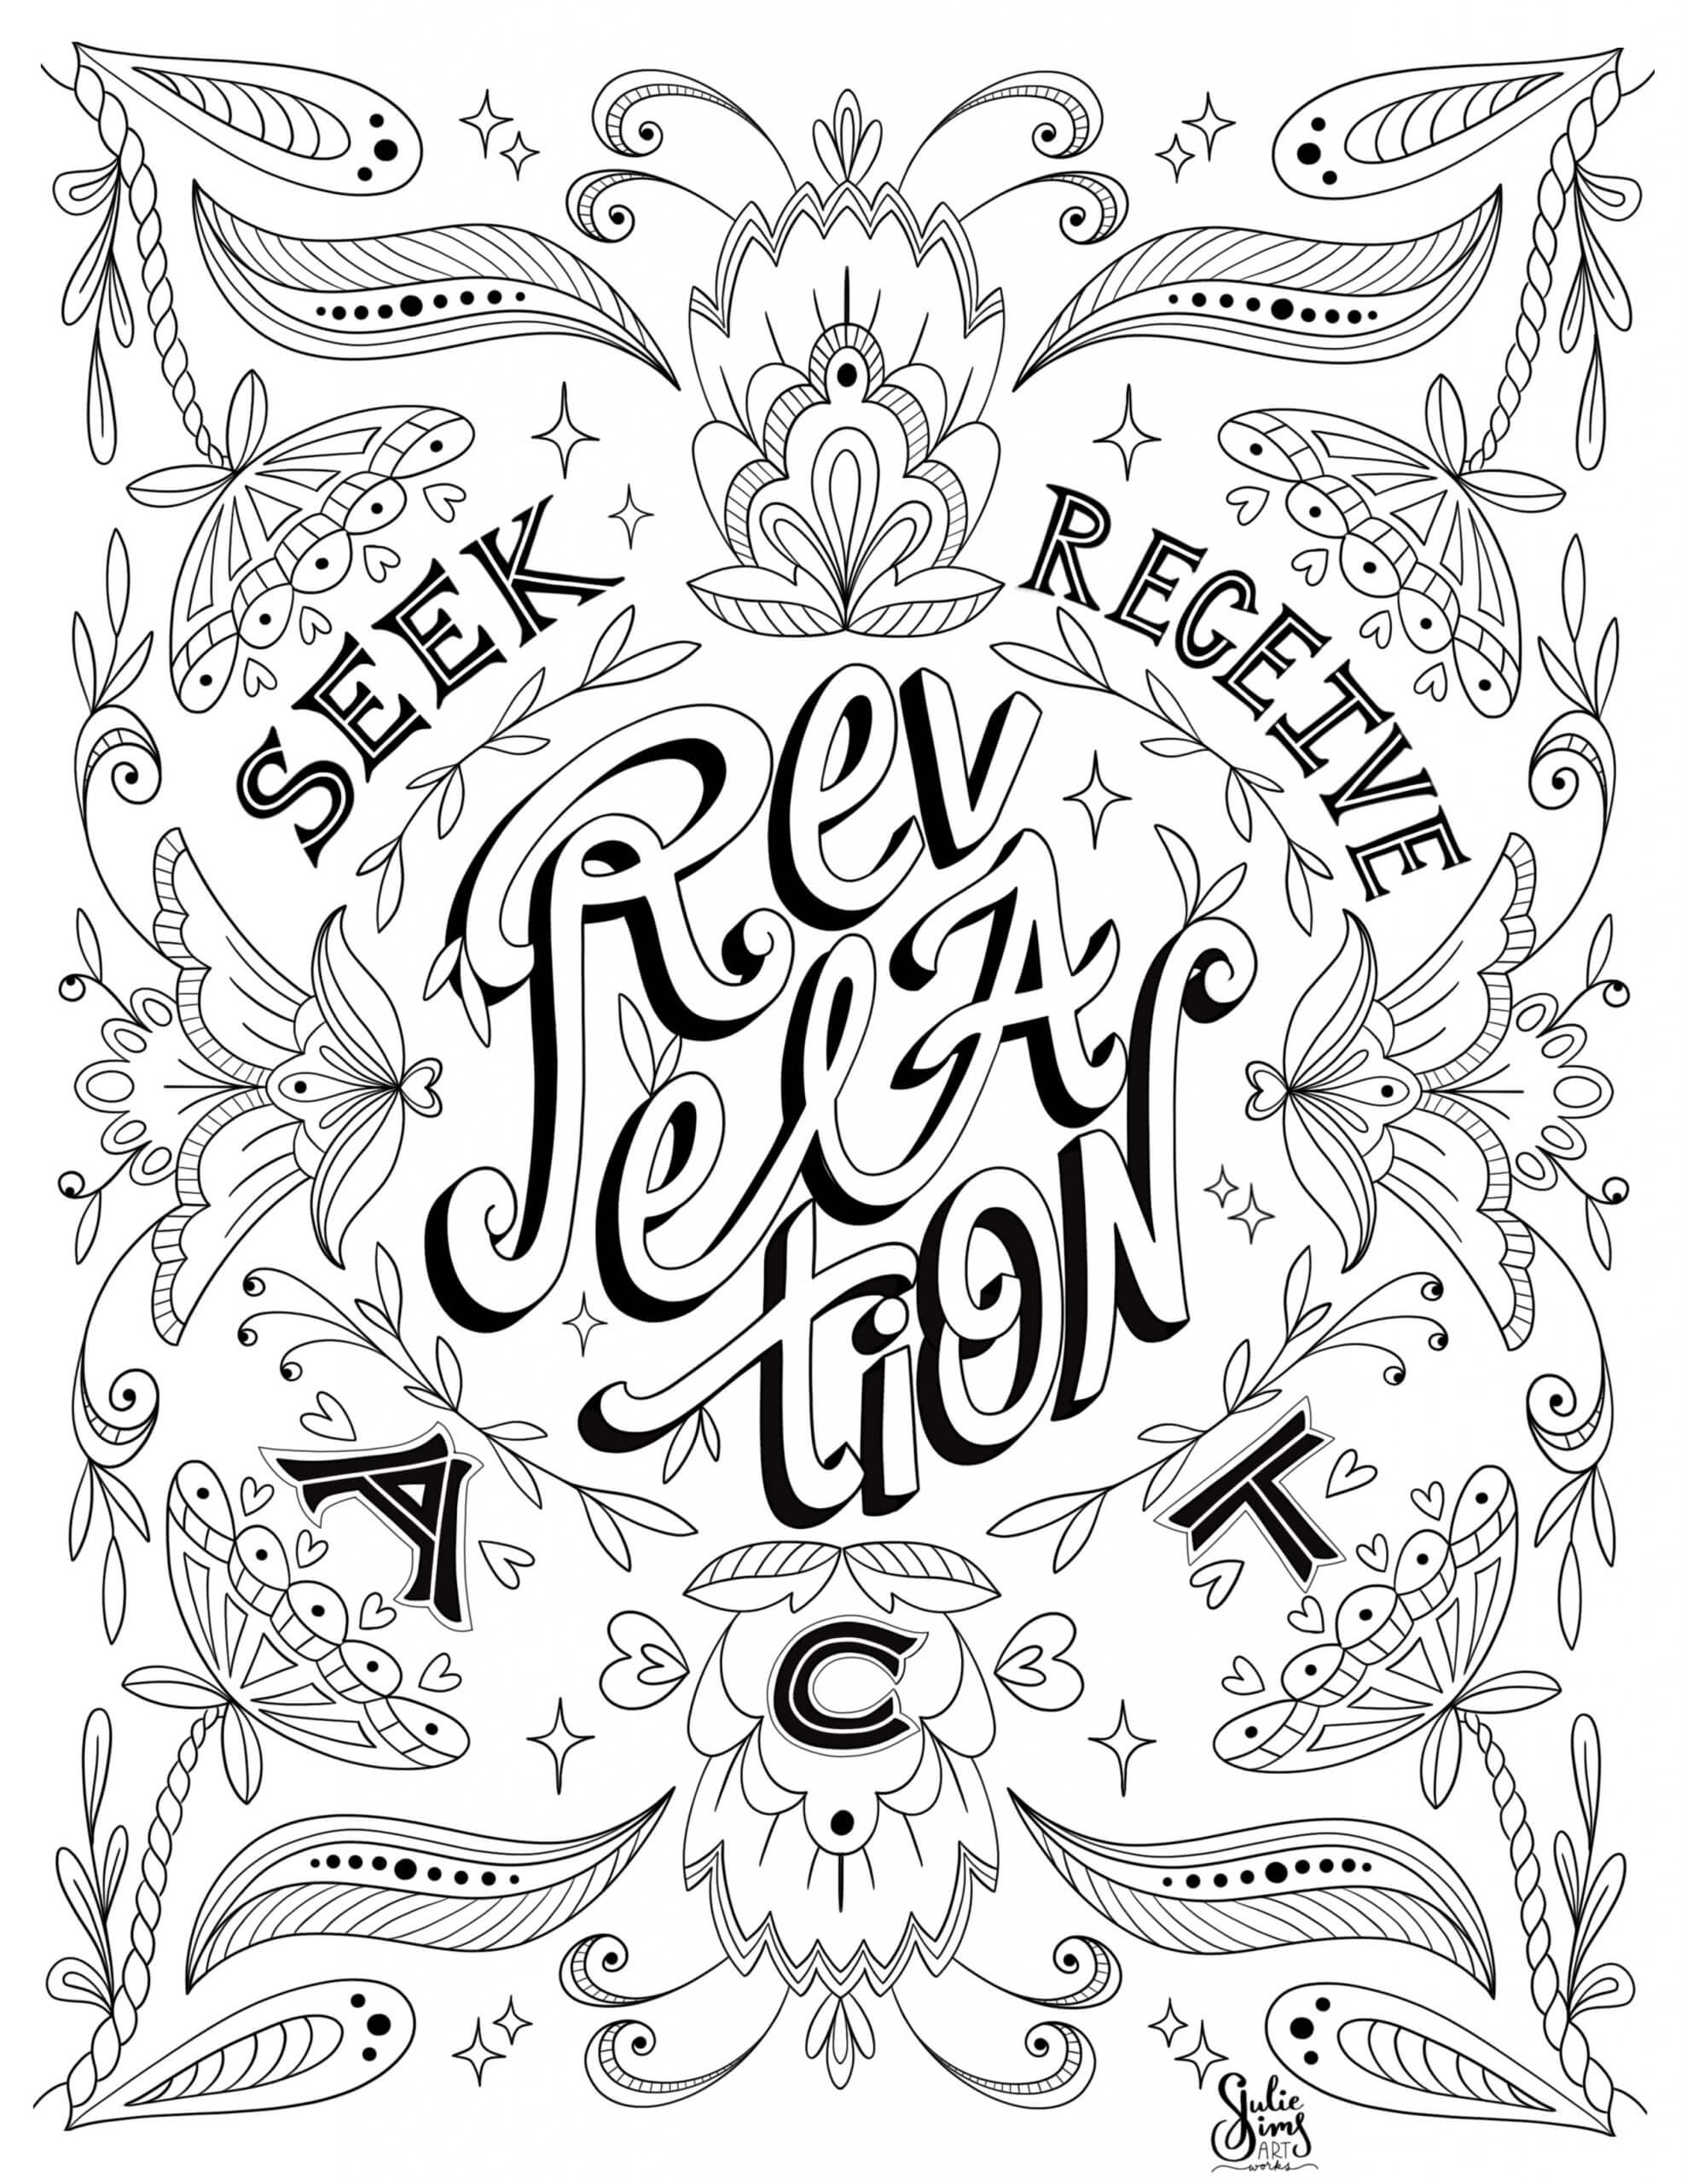 Revelation coloring page, inspiration coloring page, seek, receive, act coloring page